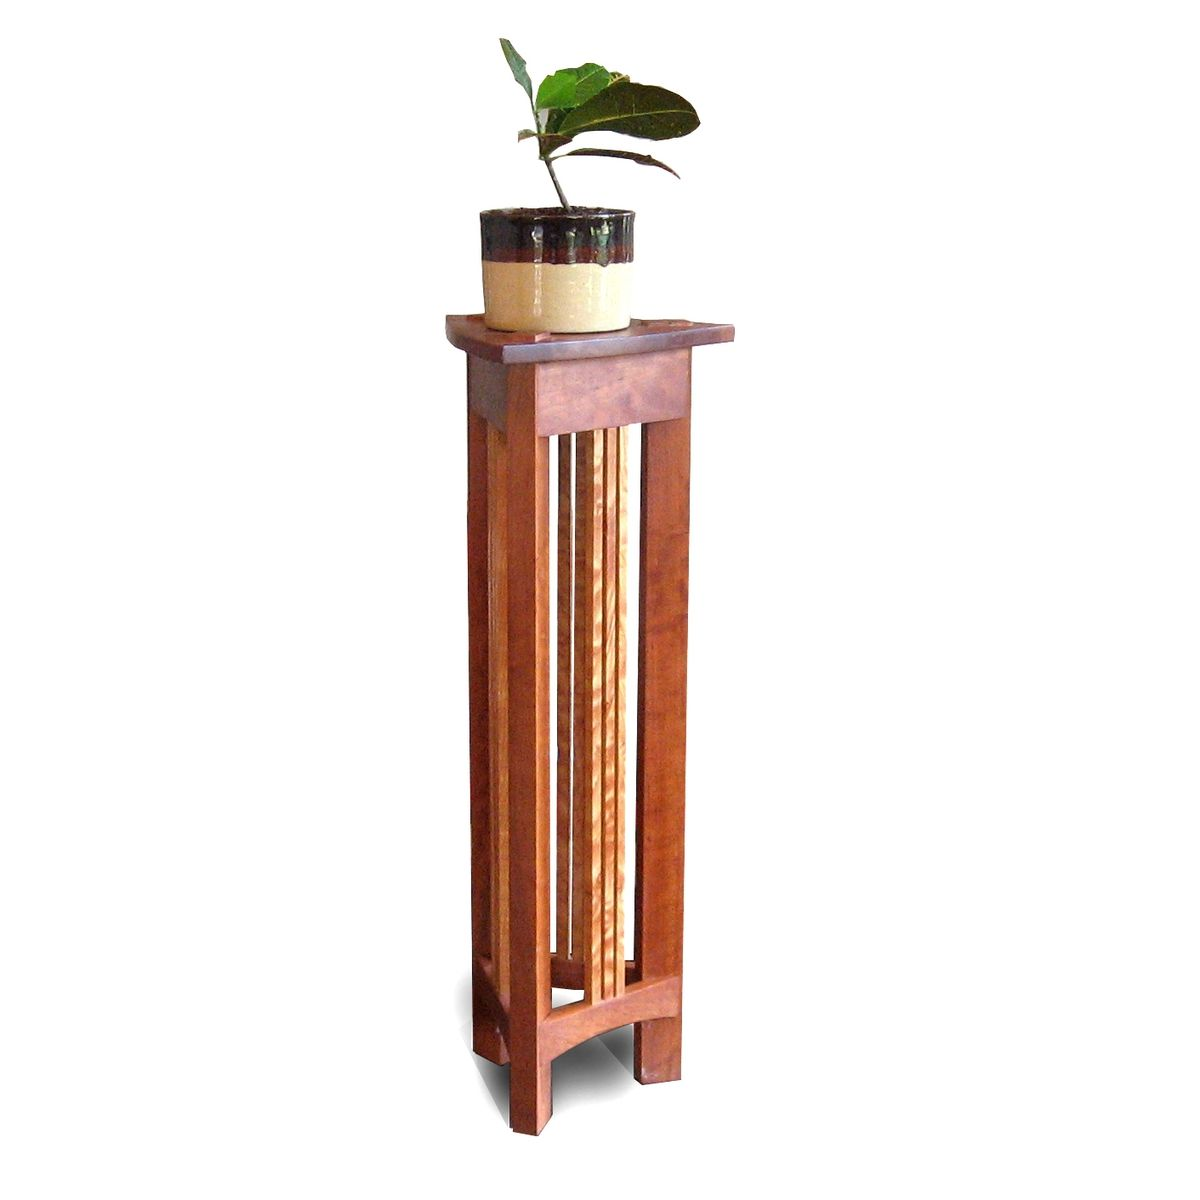 Wood And Metal Plant Stand Hand Made Plant Stand By Mark Love Furniture Custommade